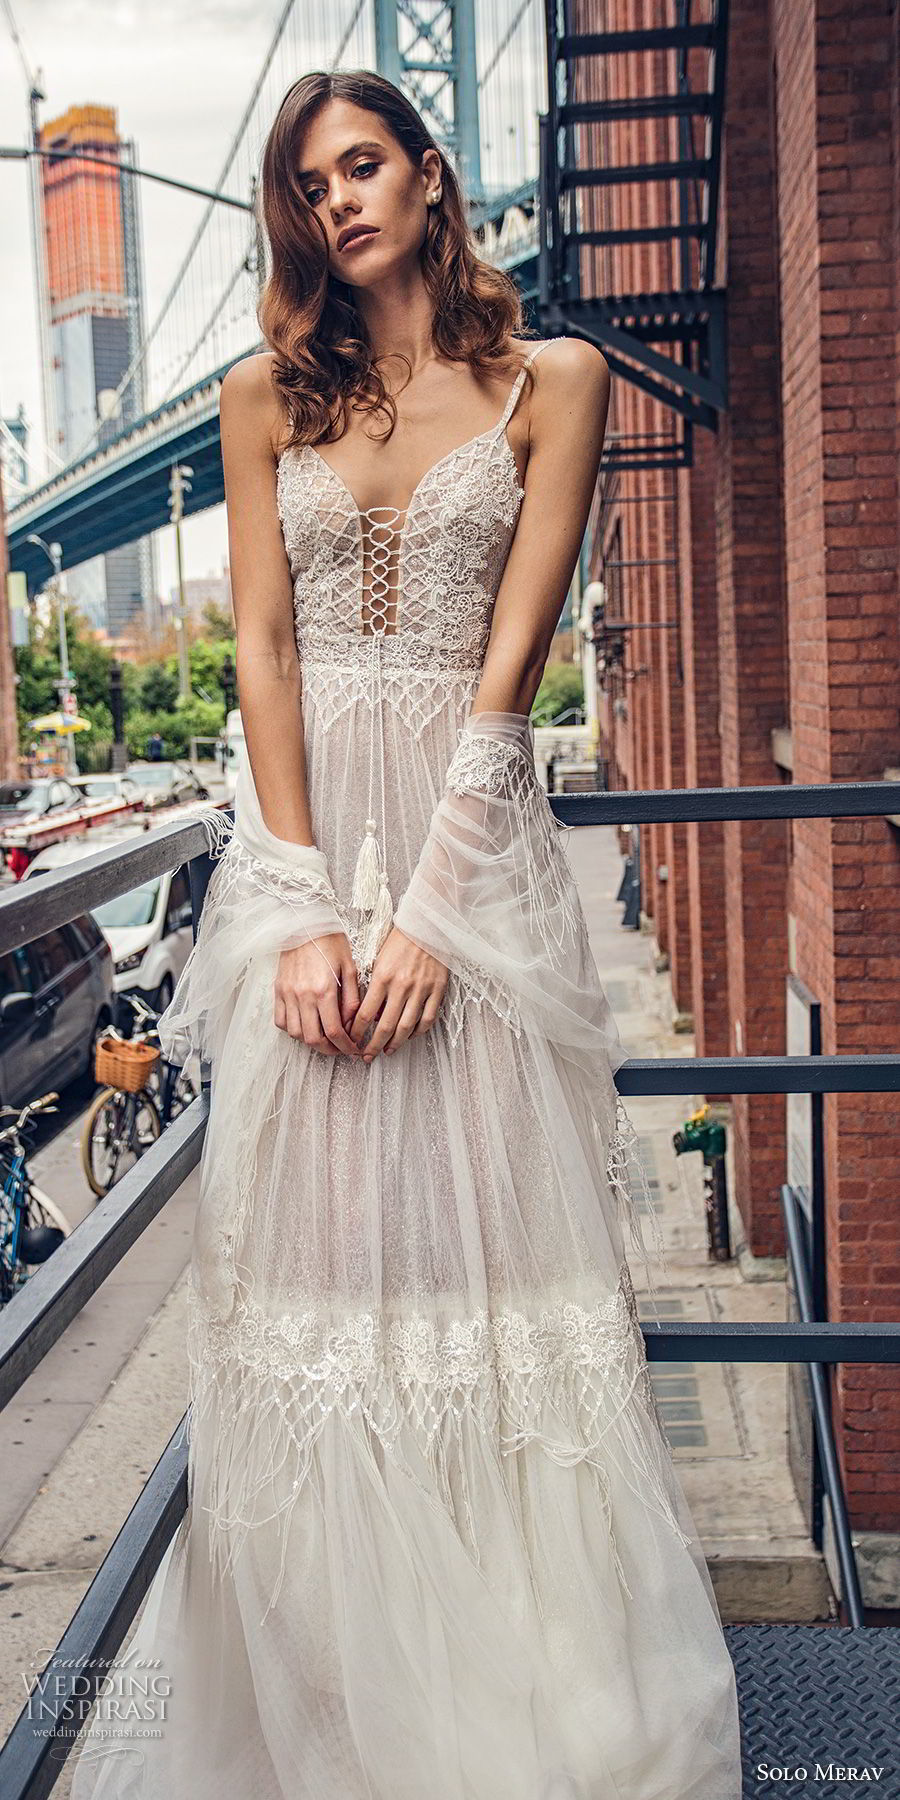 solo merav 2018 bridal sleeveless thin strap deep plunging sweetheart neckline heavily embellished bodice romantic bohemian soft a  line wedding dress open back chapel train (4) mv